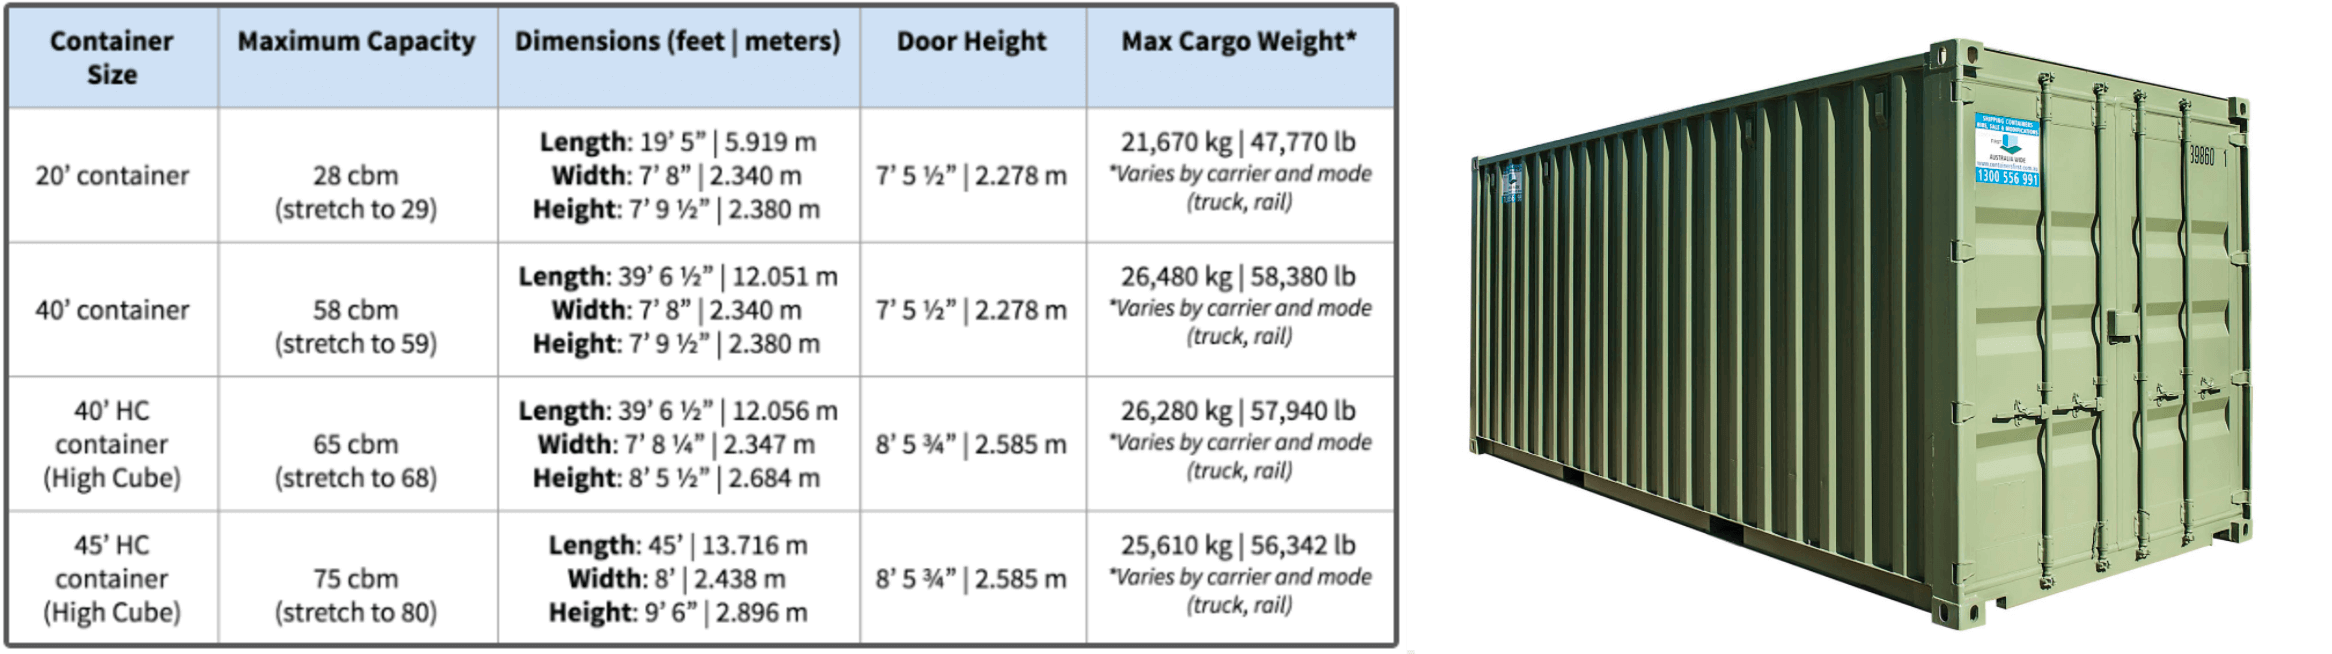 Container size sheet